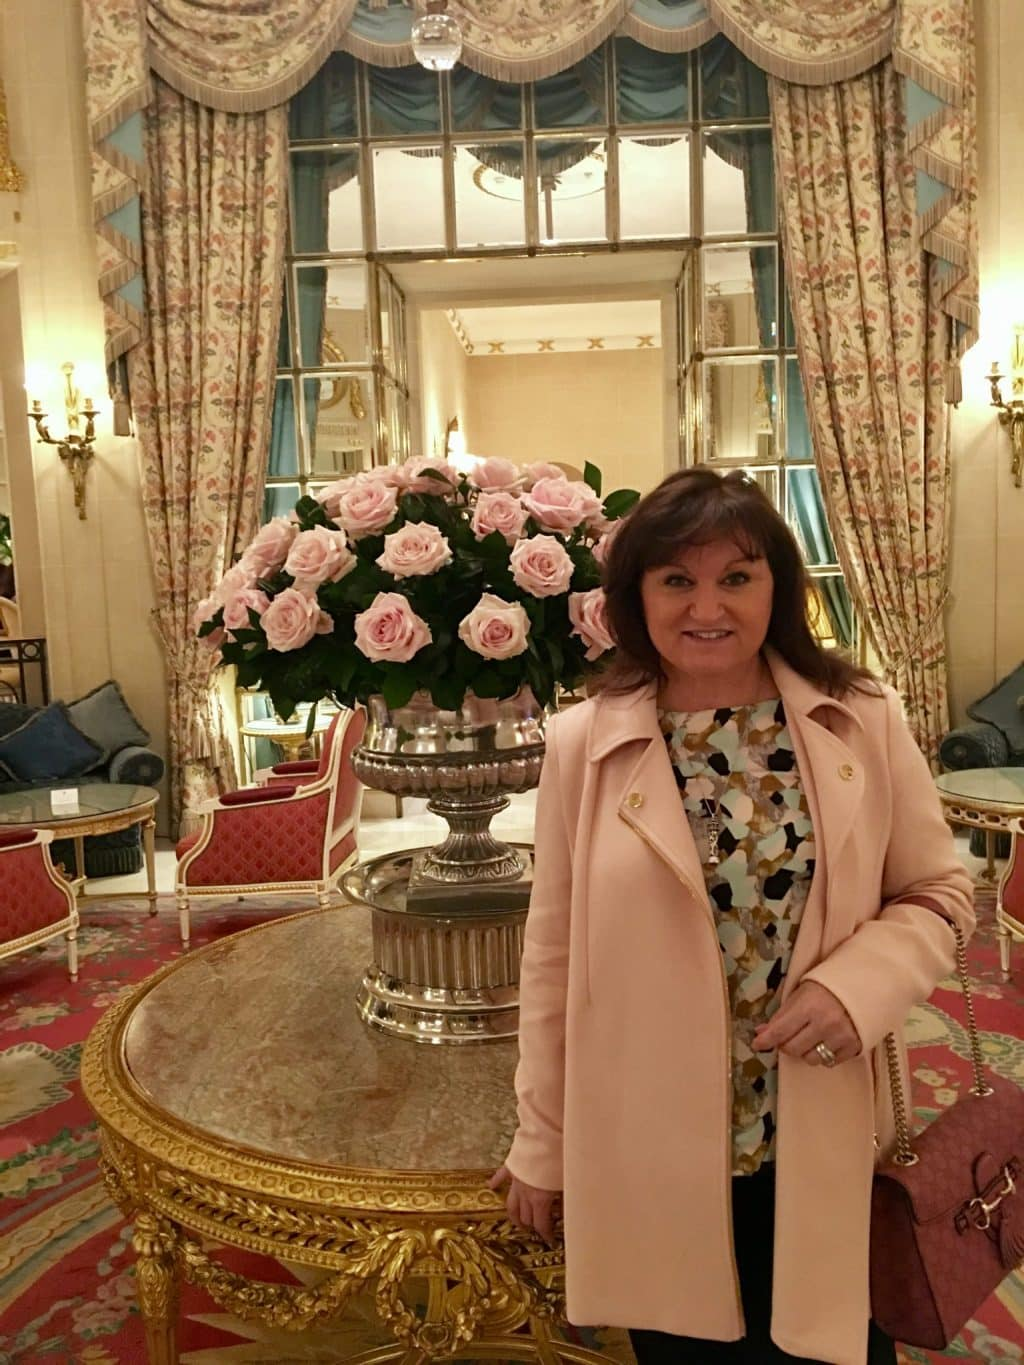 Valentines Week in the Ritz London, lady with pink coat